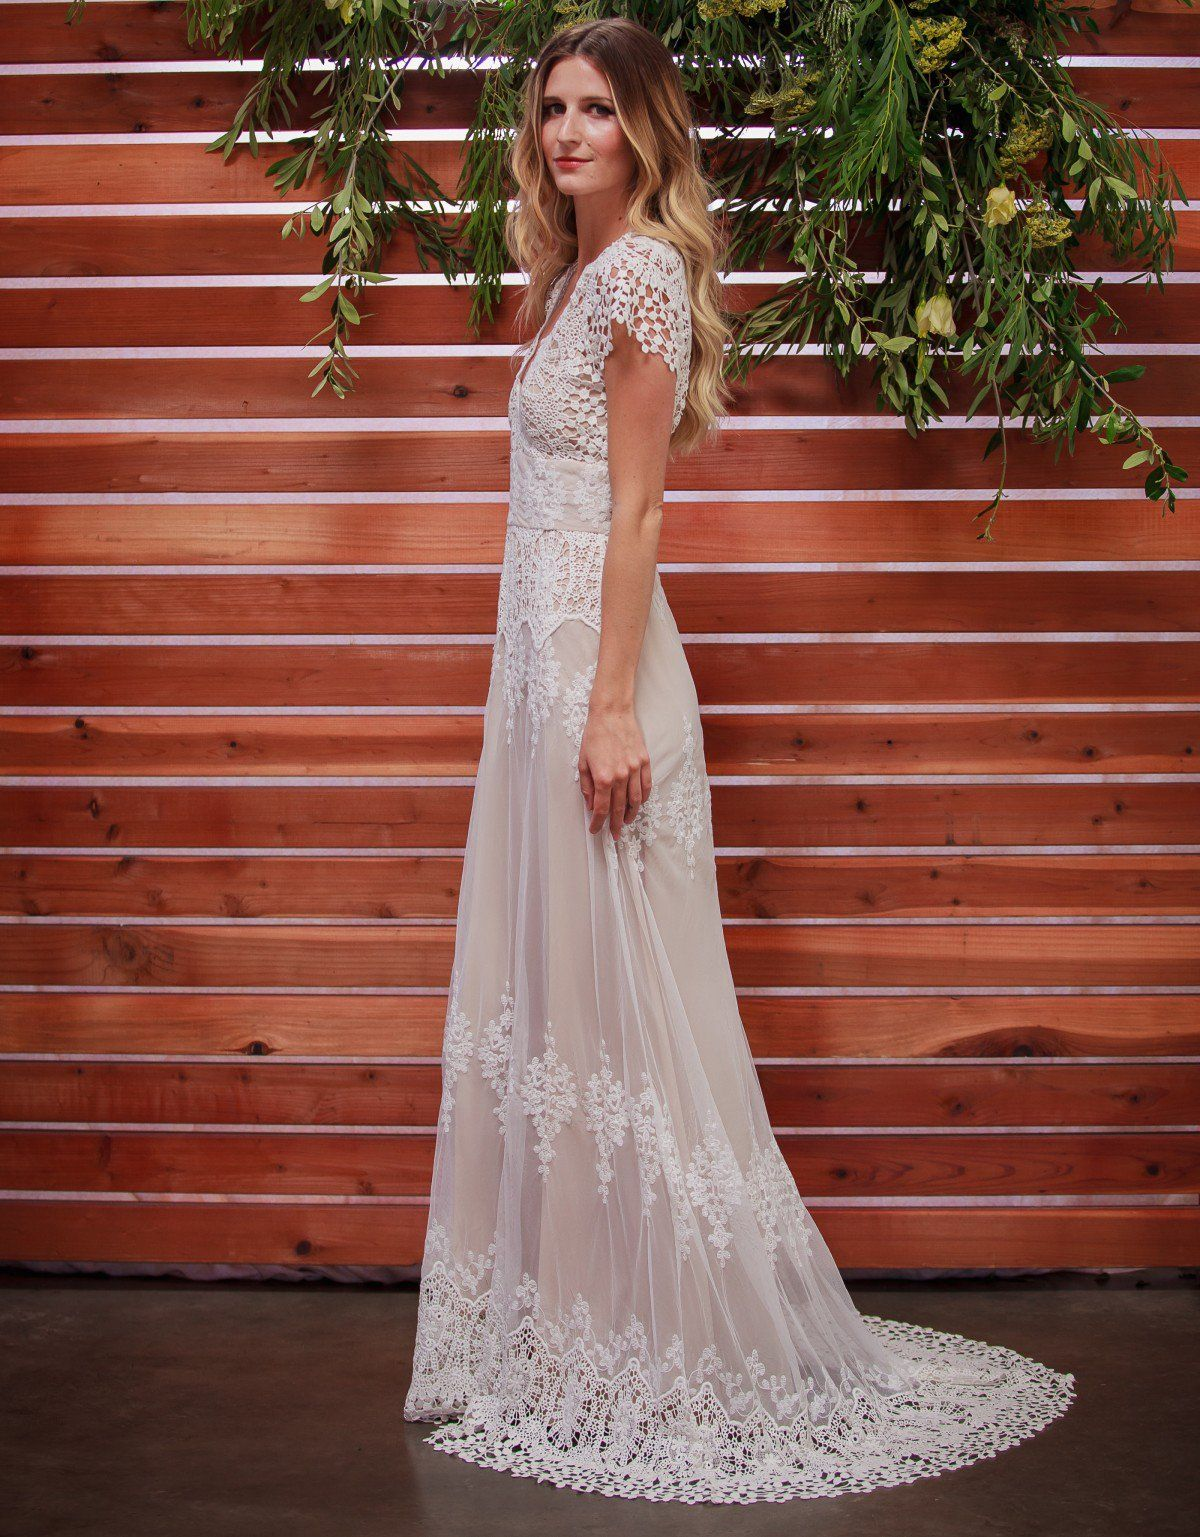 Dreamersandloversazalealacebohemianweddingdresscottonlace